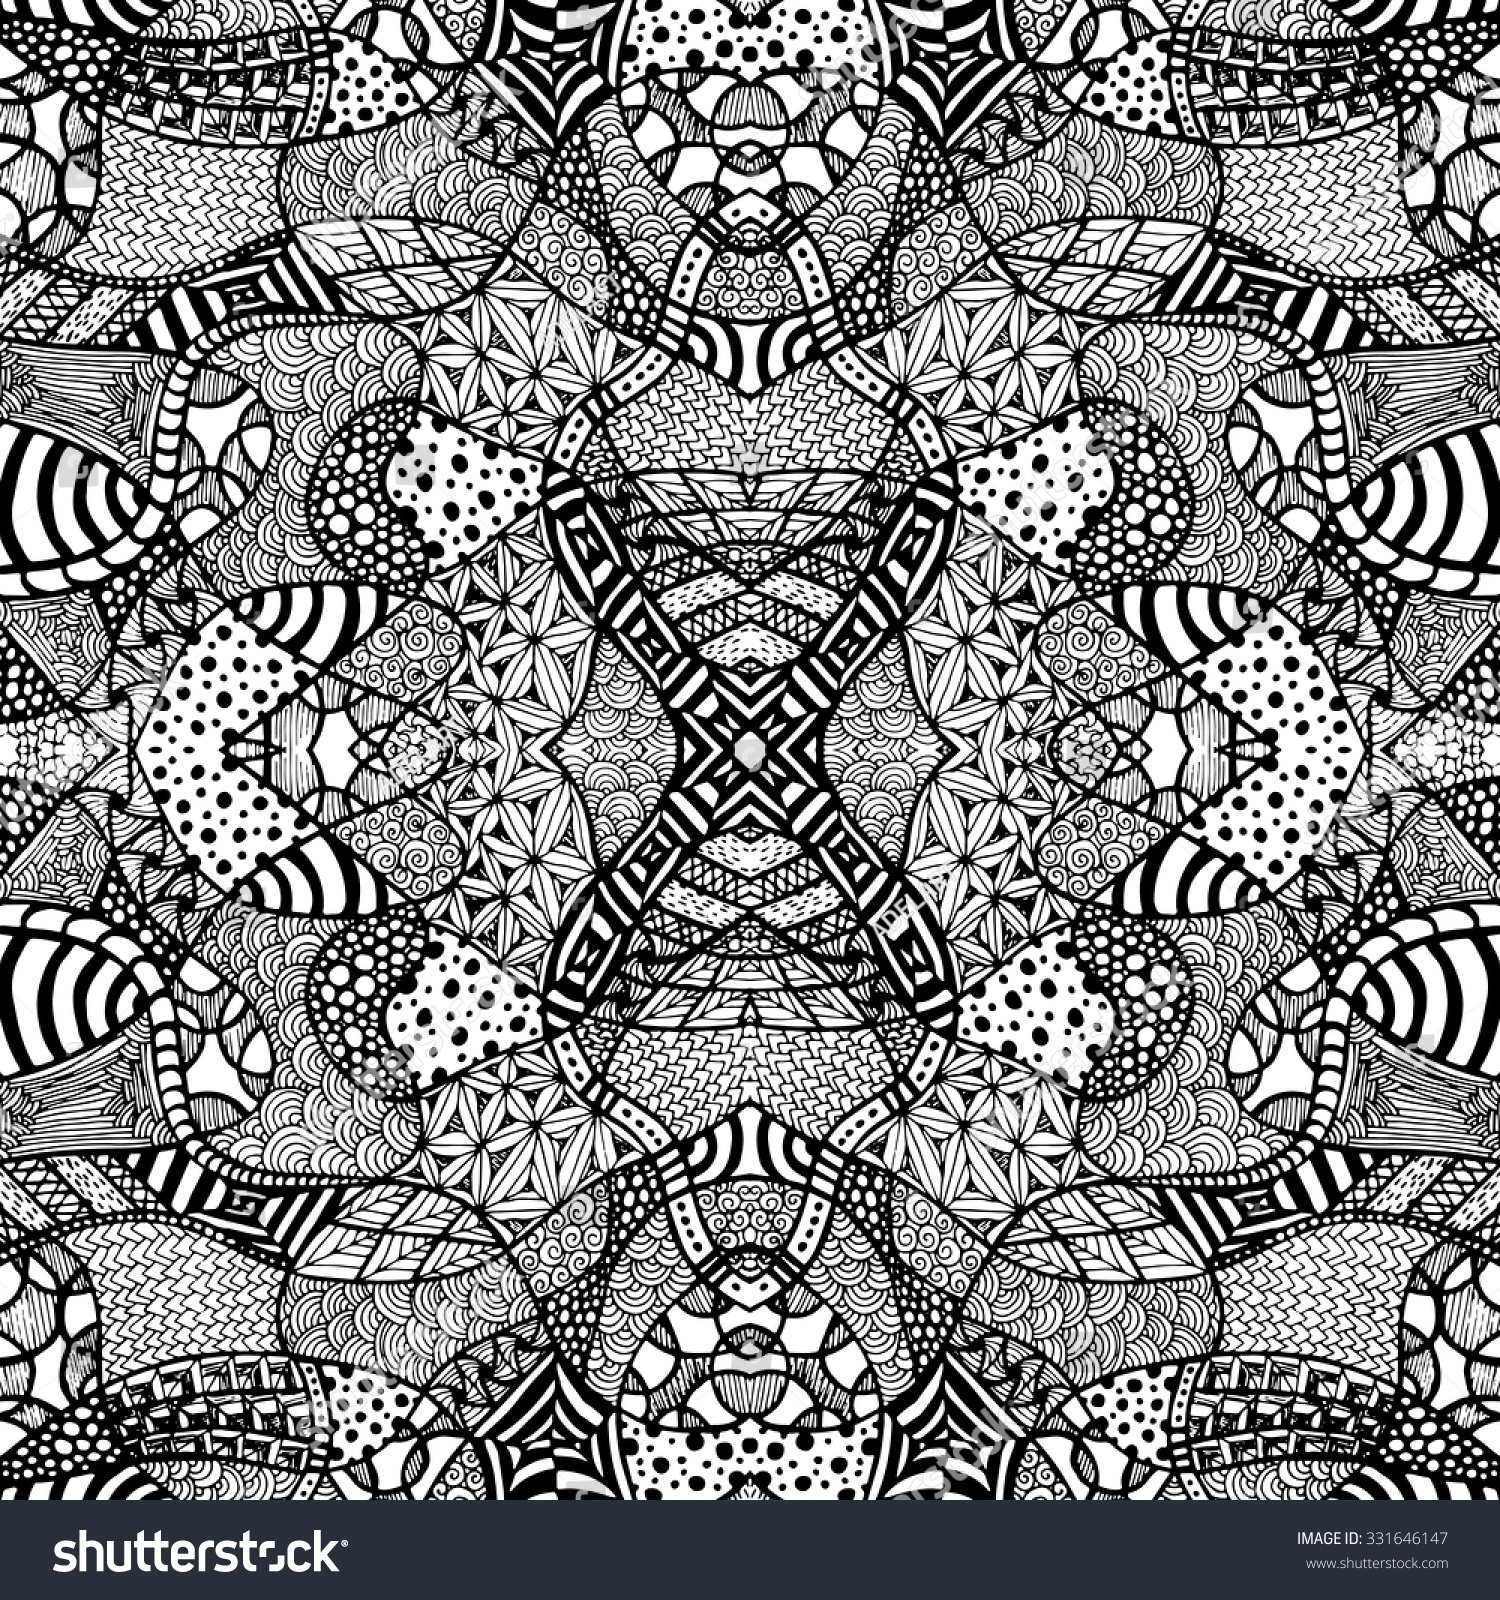 zentangle background with a lot of elements totally hand drawn illustration vector image can